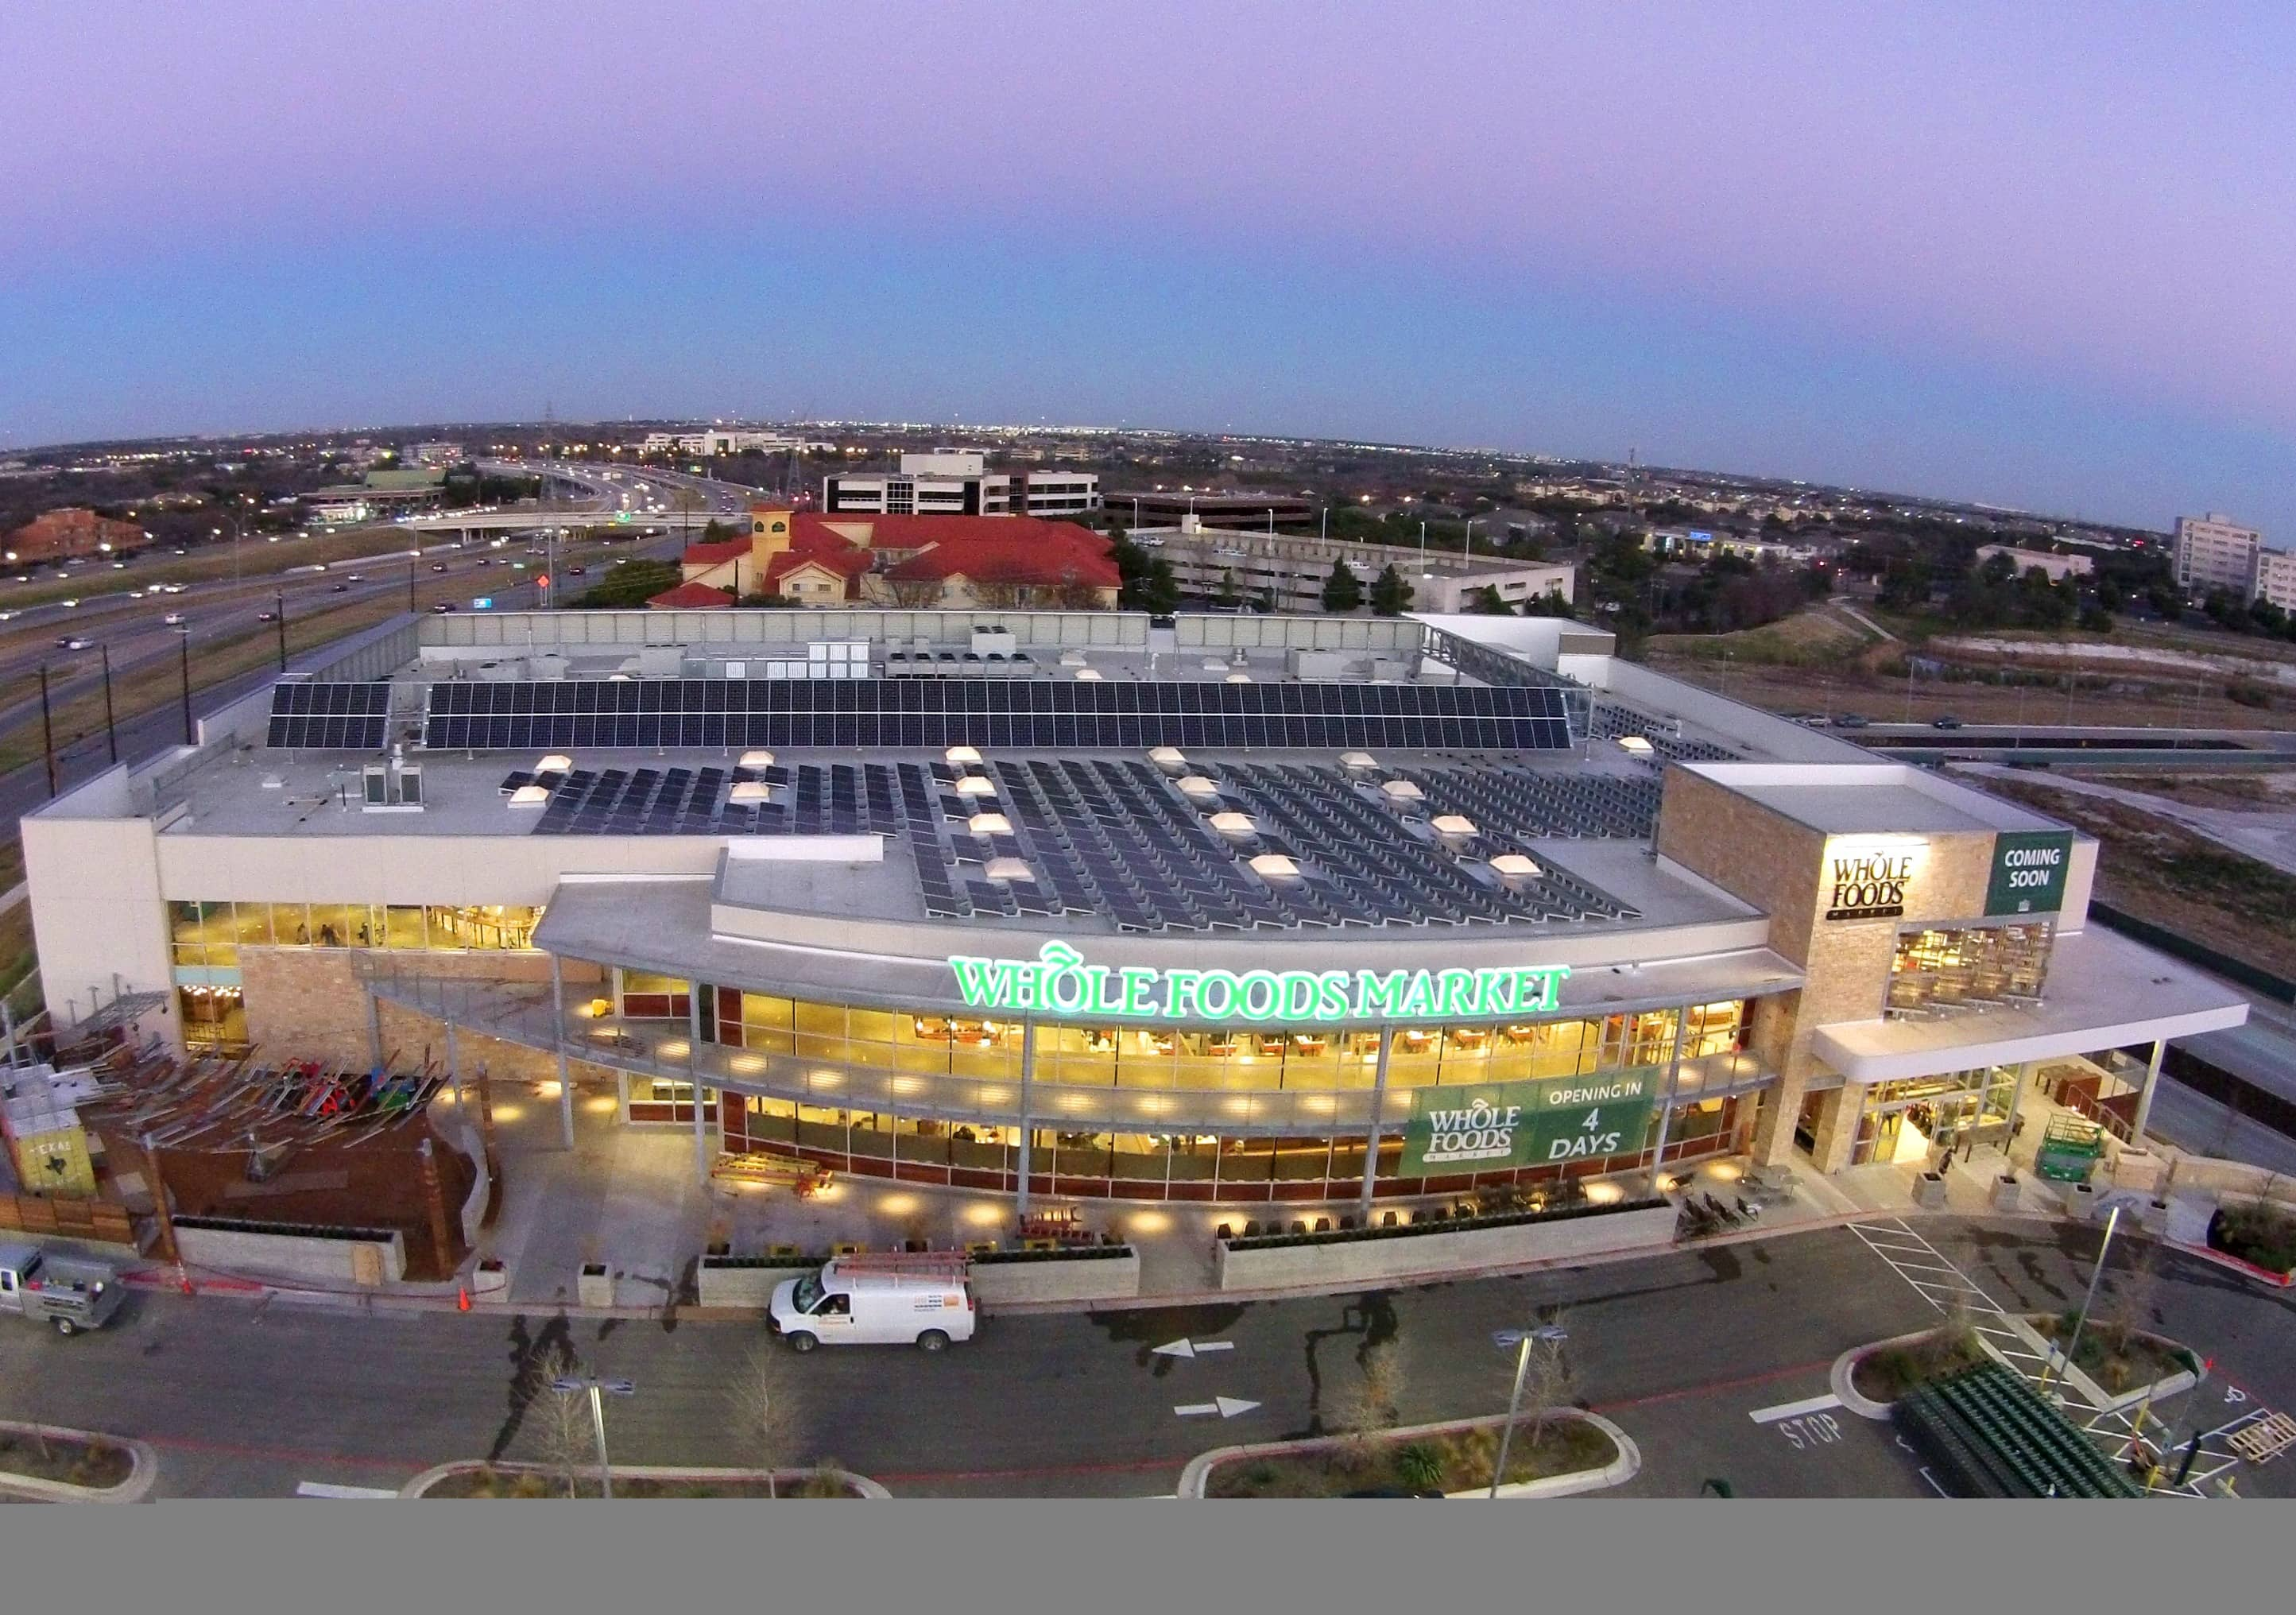 Whole-Foods-Sundown-1 U.S. Superstores Have Huge Solar Potential, Says Report